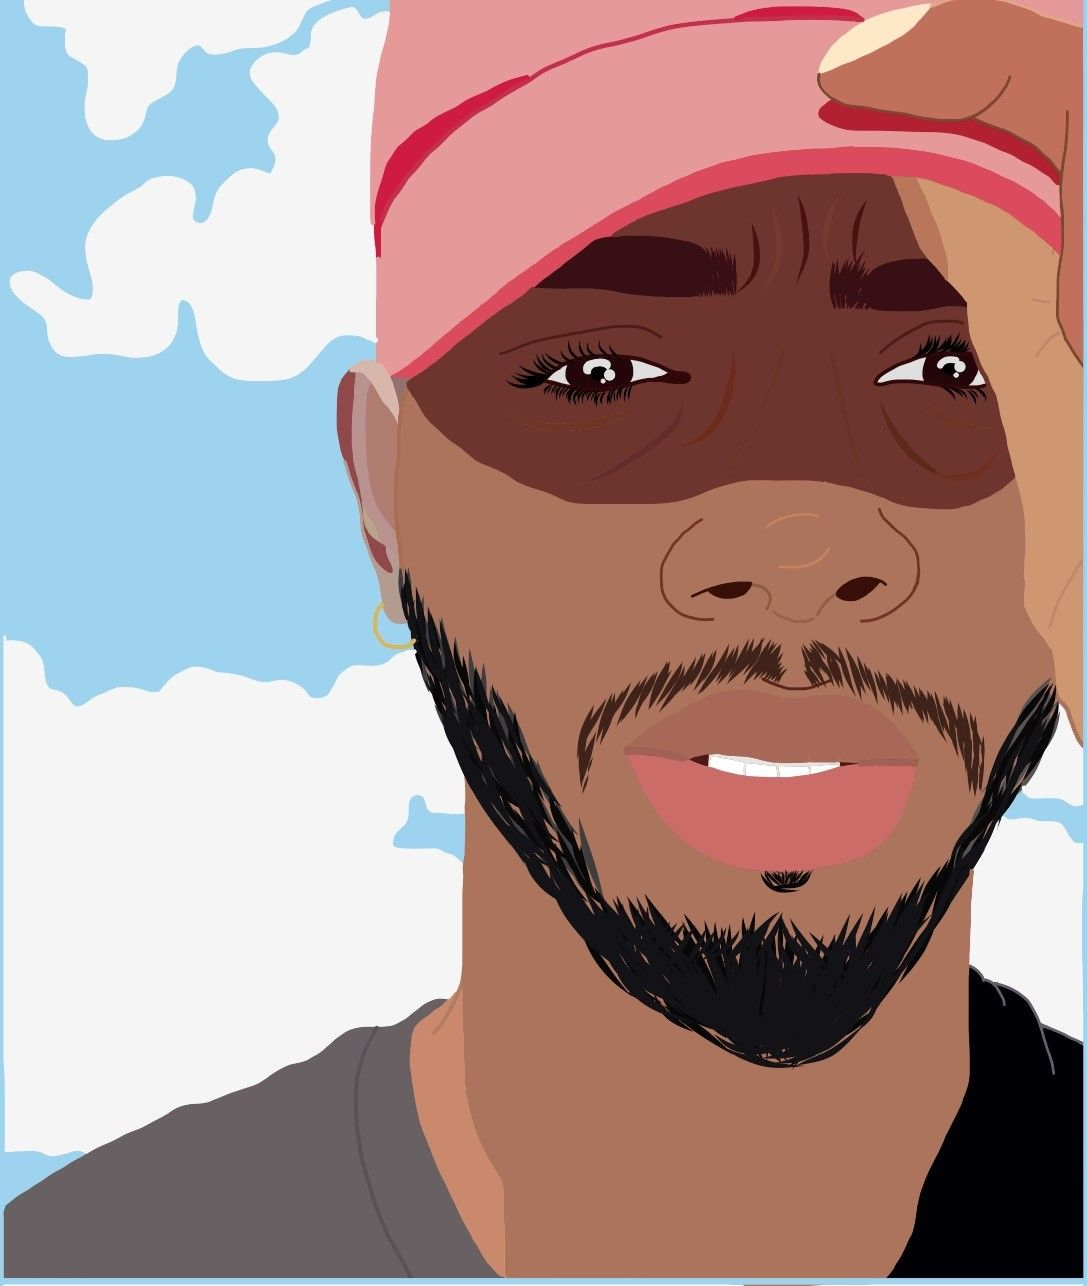 Cartoon Of Brysontiller Aka Bryson Tiller In Honor Of His Album Released Today Titled True To Self Bryson Tiller Celebrity Drawings African Art